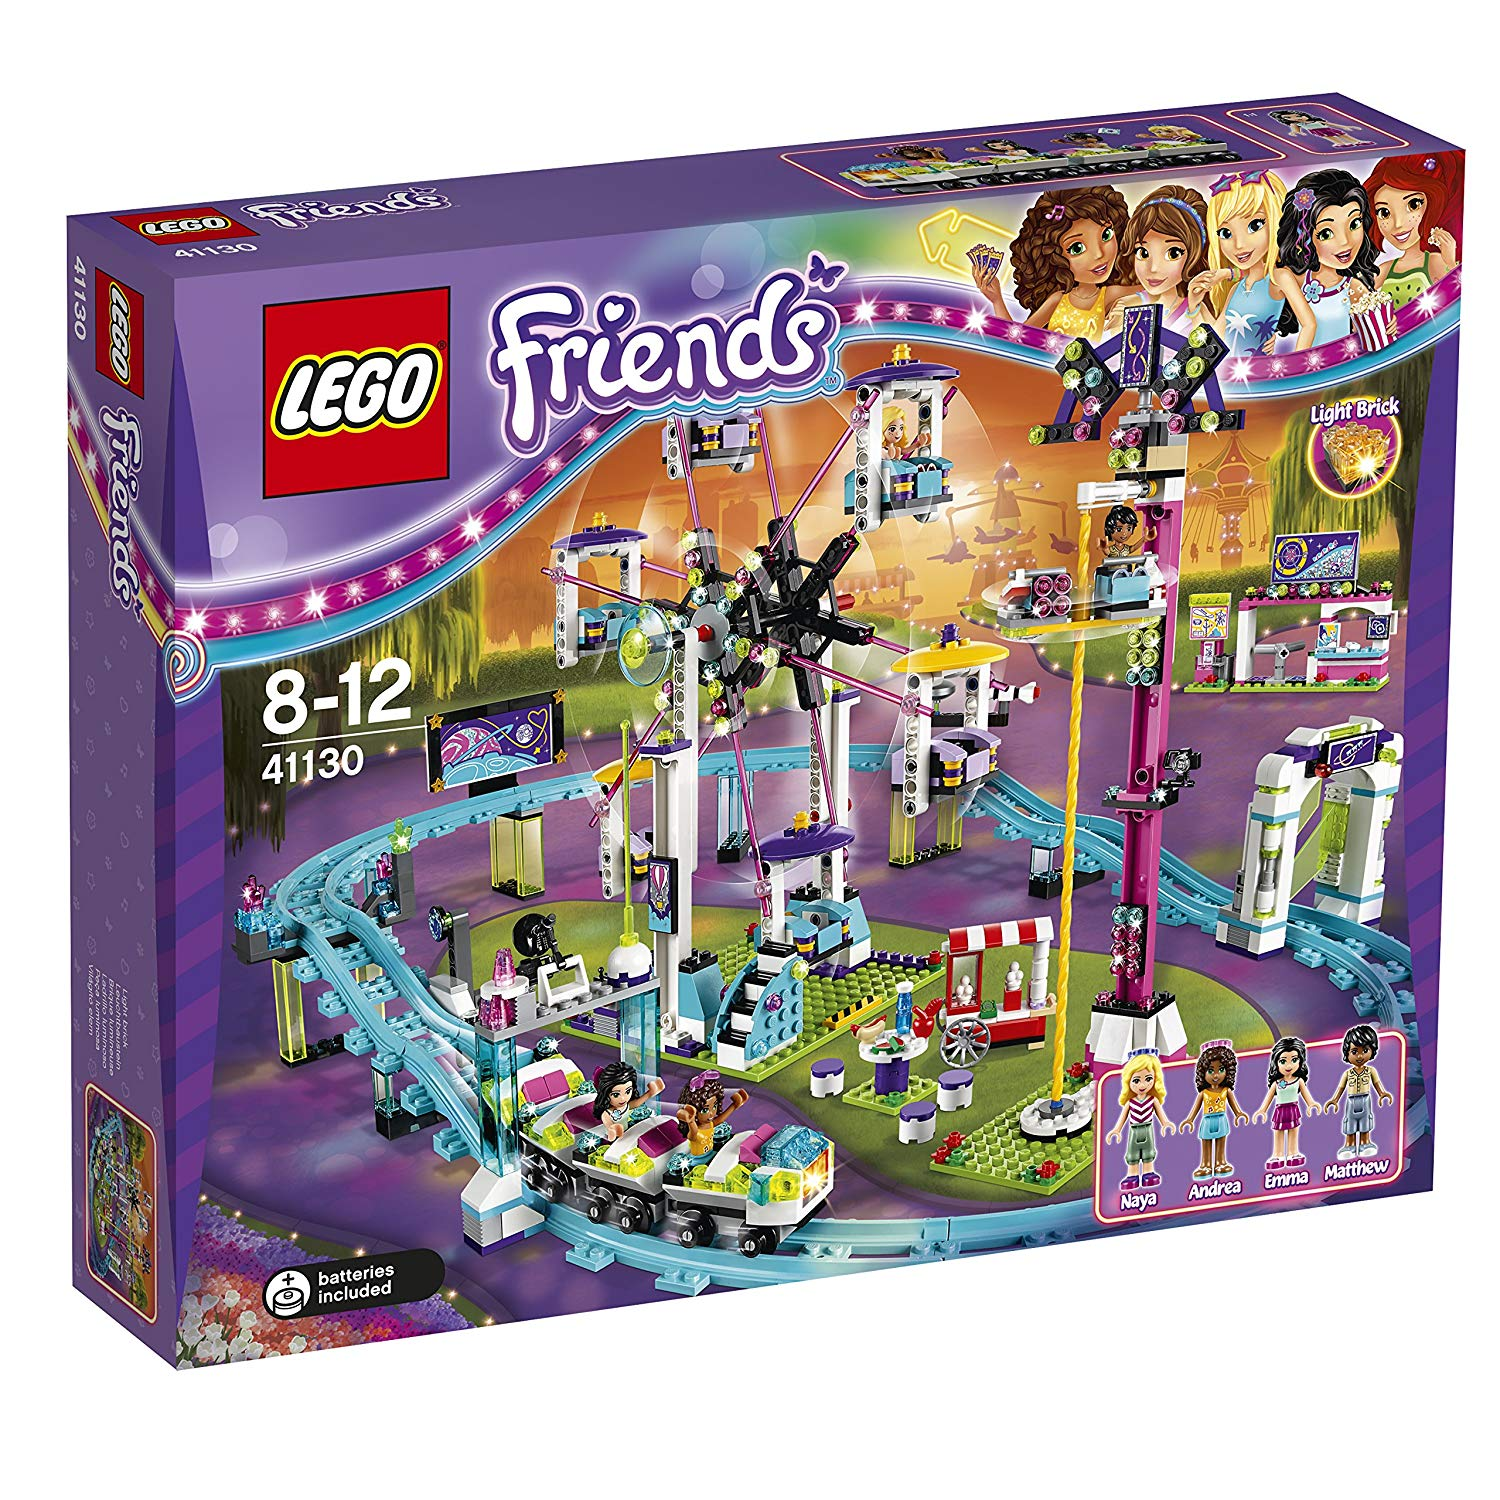 les montagnes russes du parc d attraction lego friends